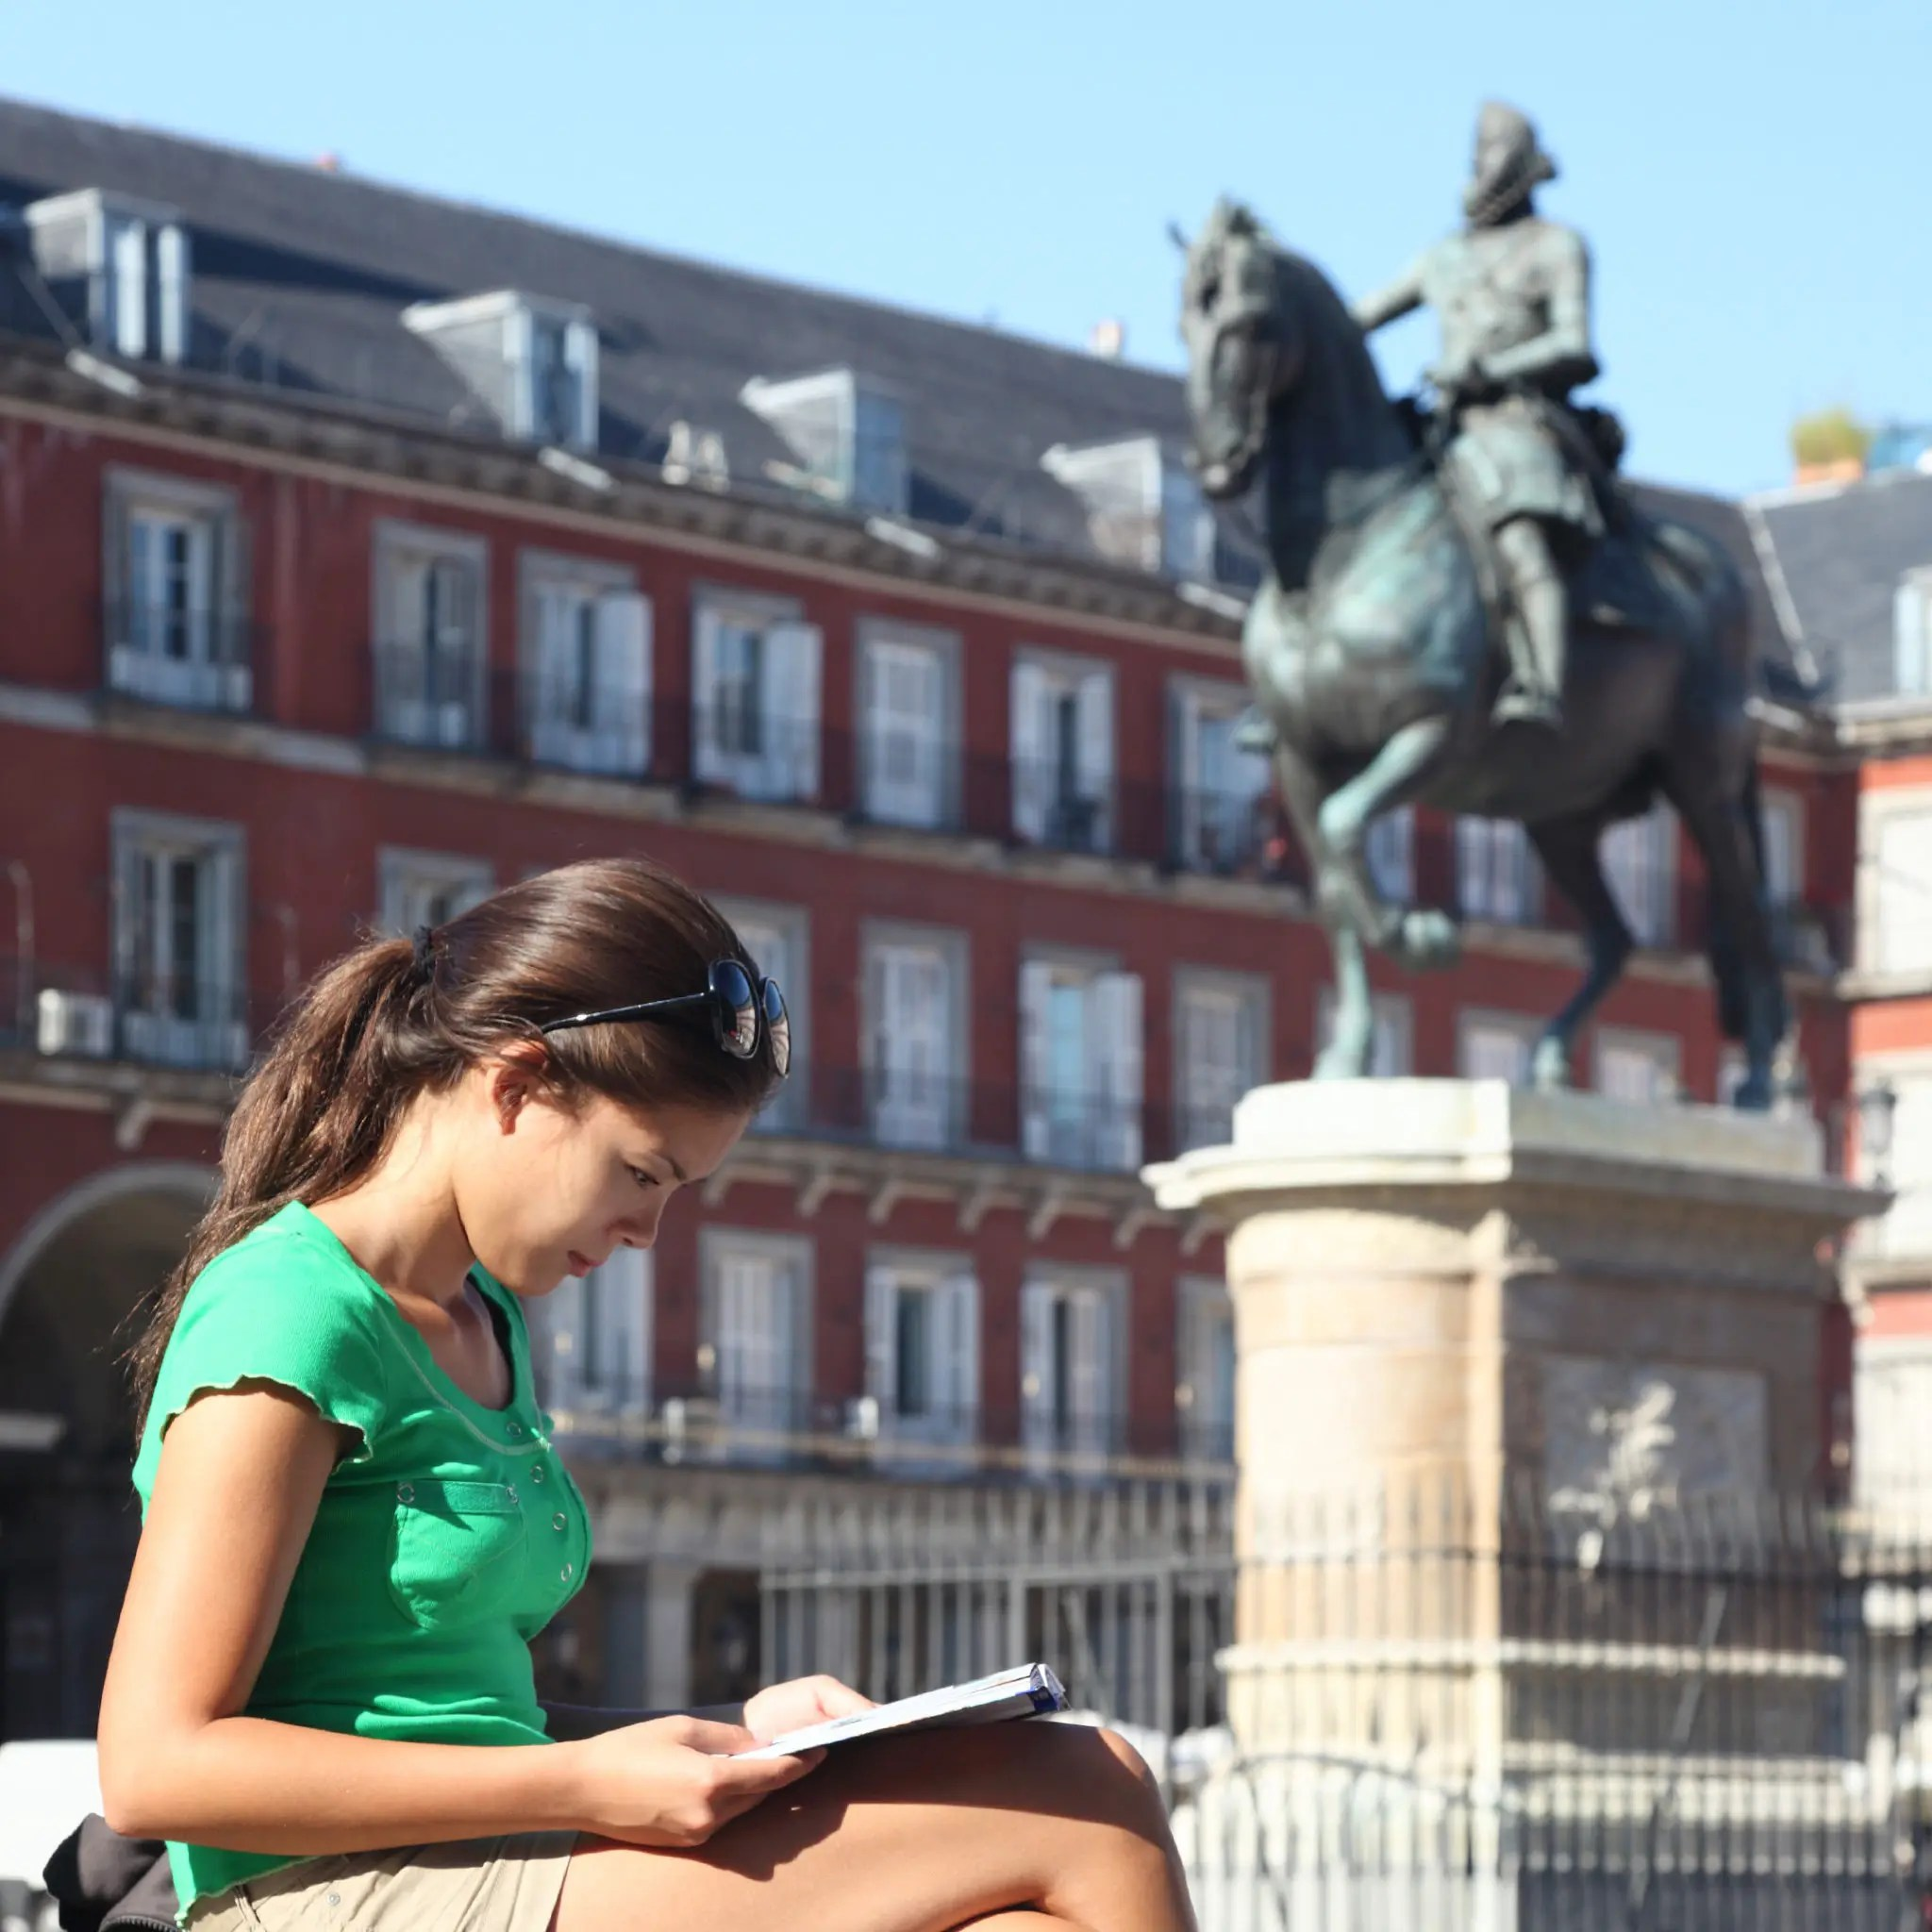 In Madrid, Spain, a woman tourist looking at a notebook on Plaza Mayor in summer with a statue behind her.